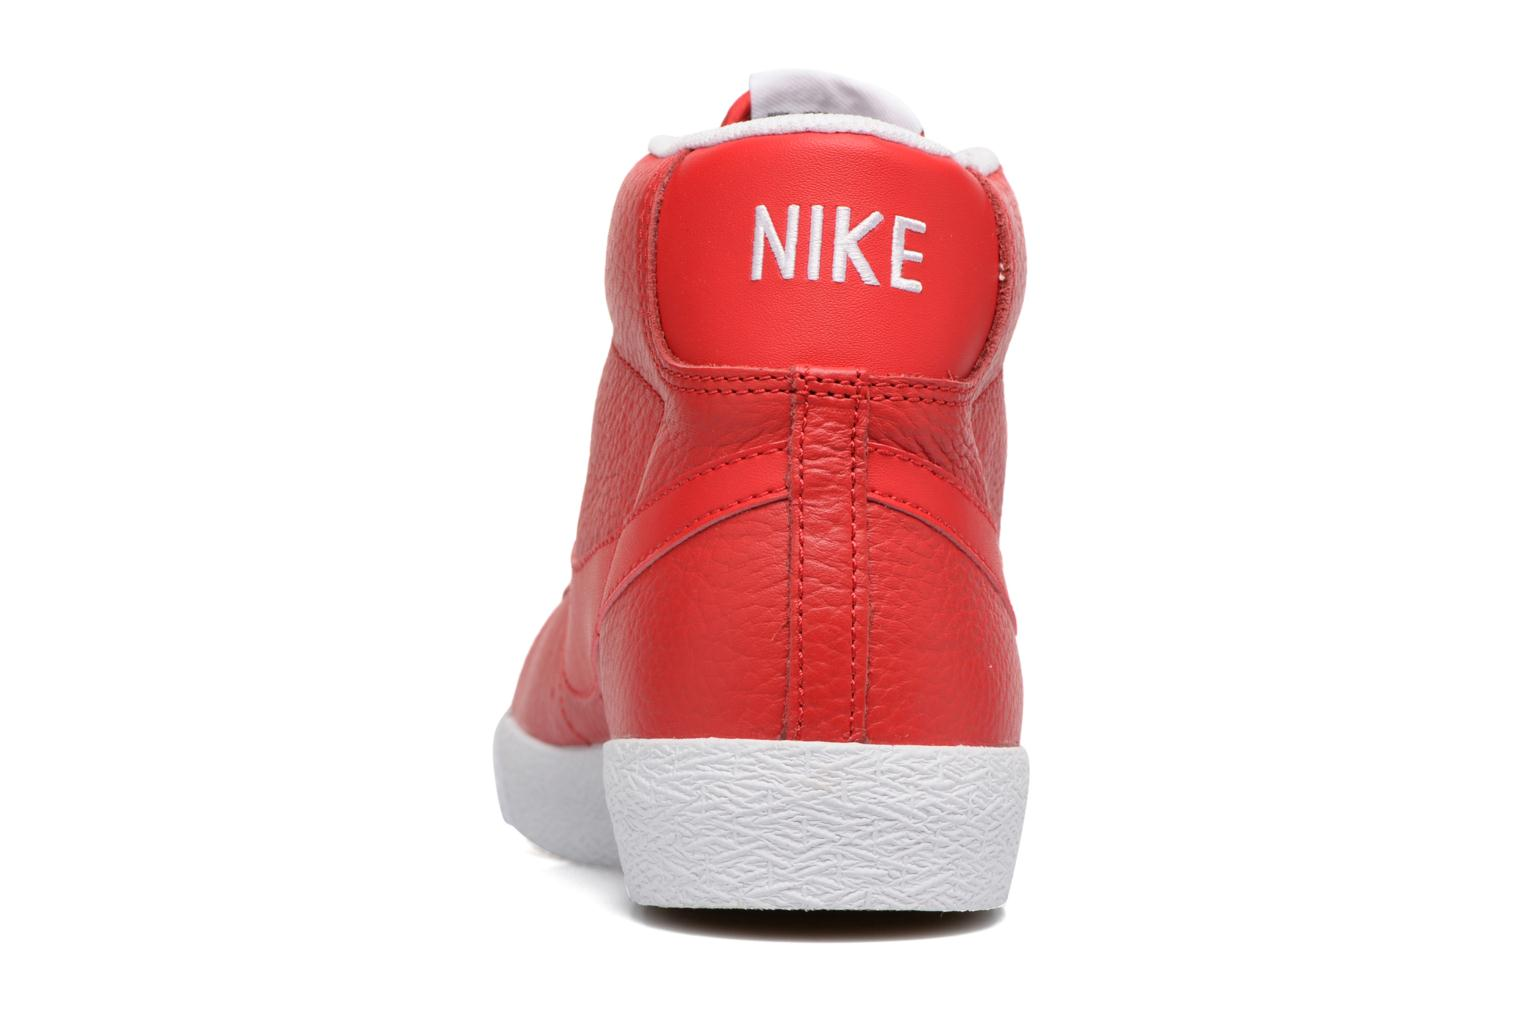 Blazer mid prm Game Red/White-Black-Gum Light Brown